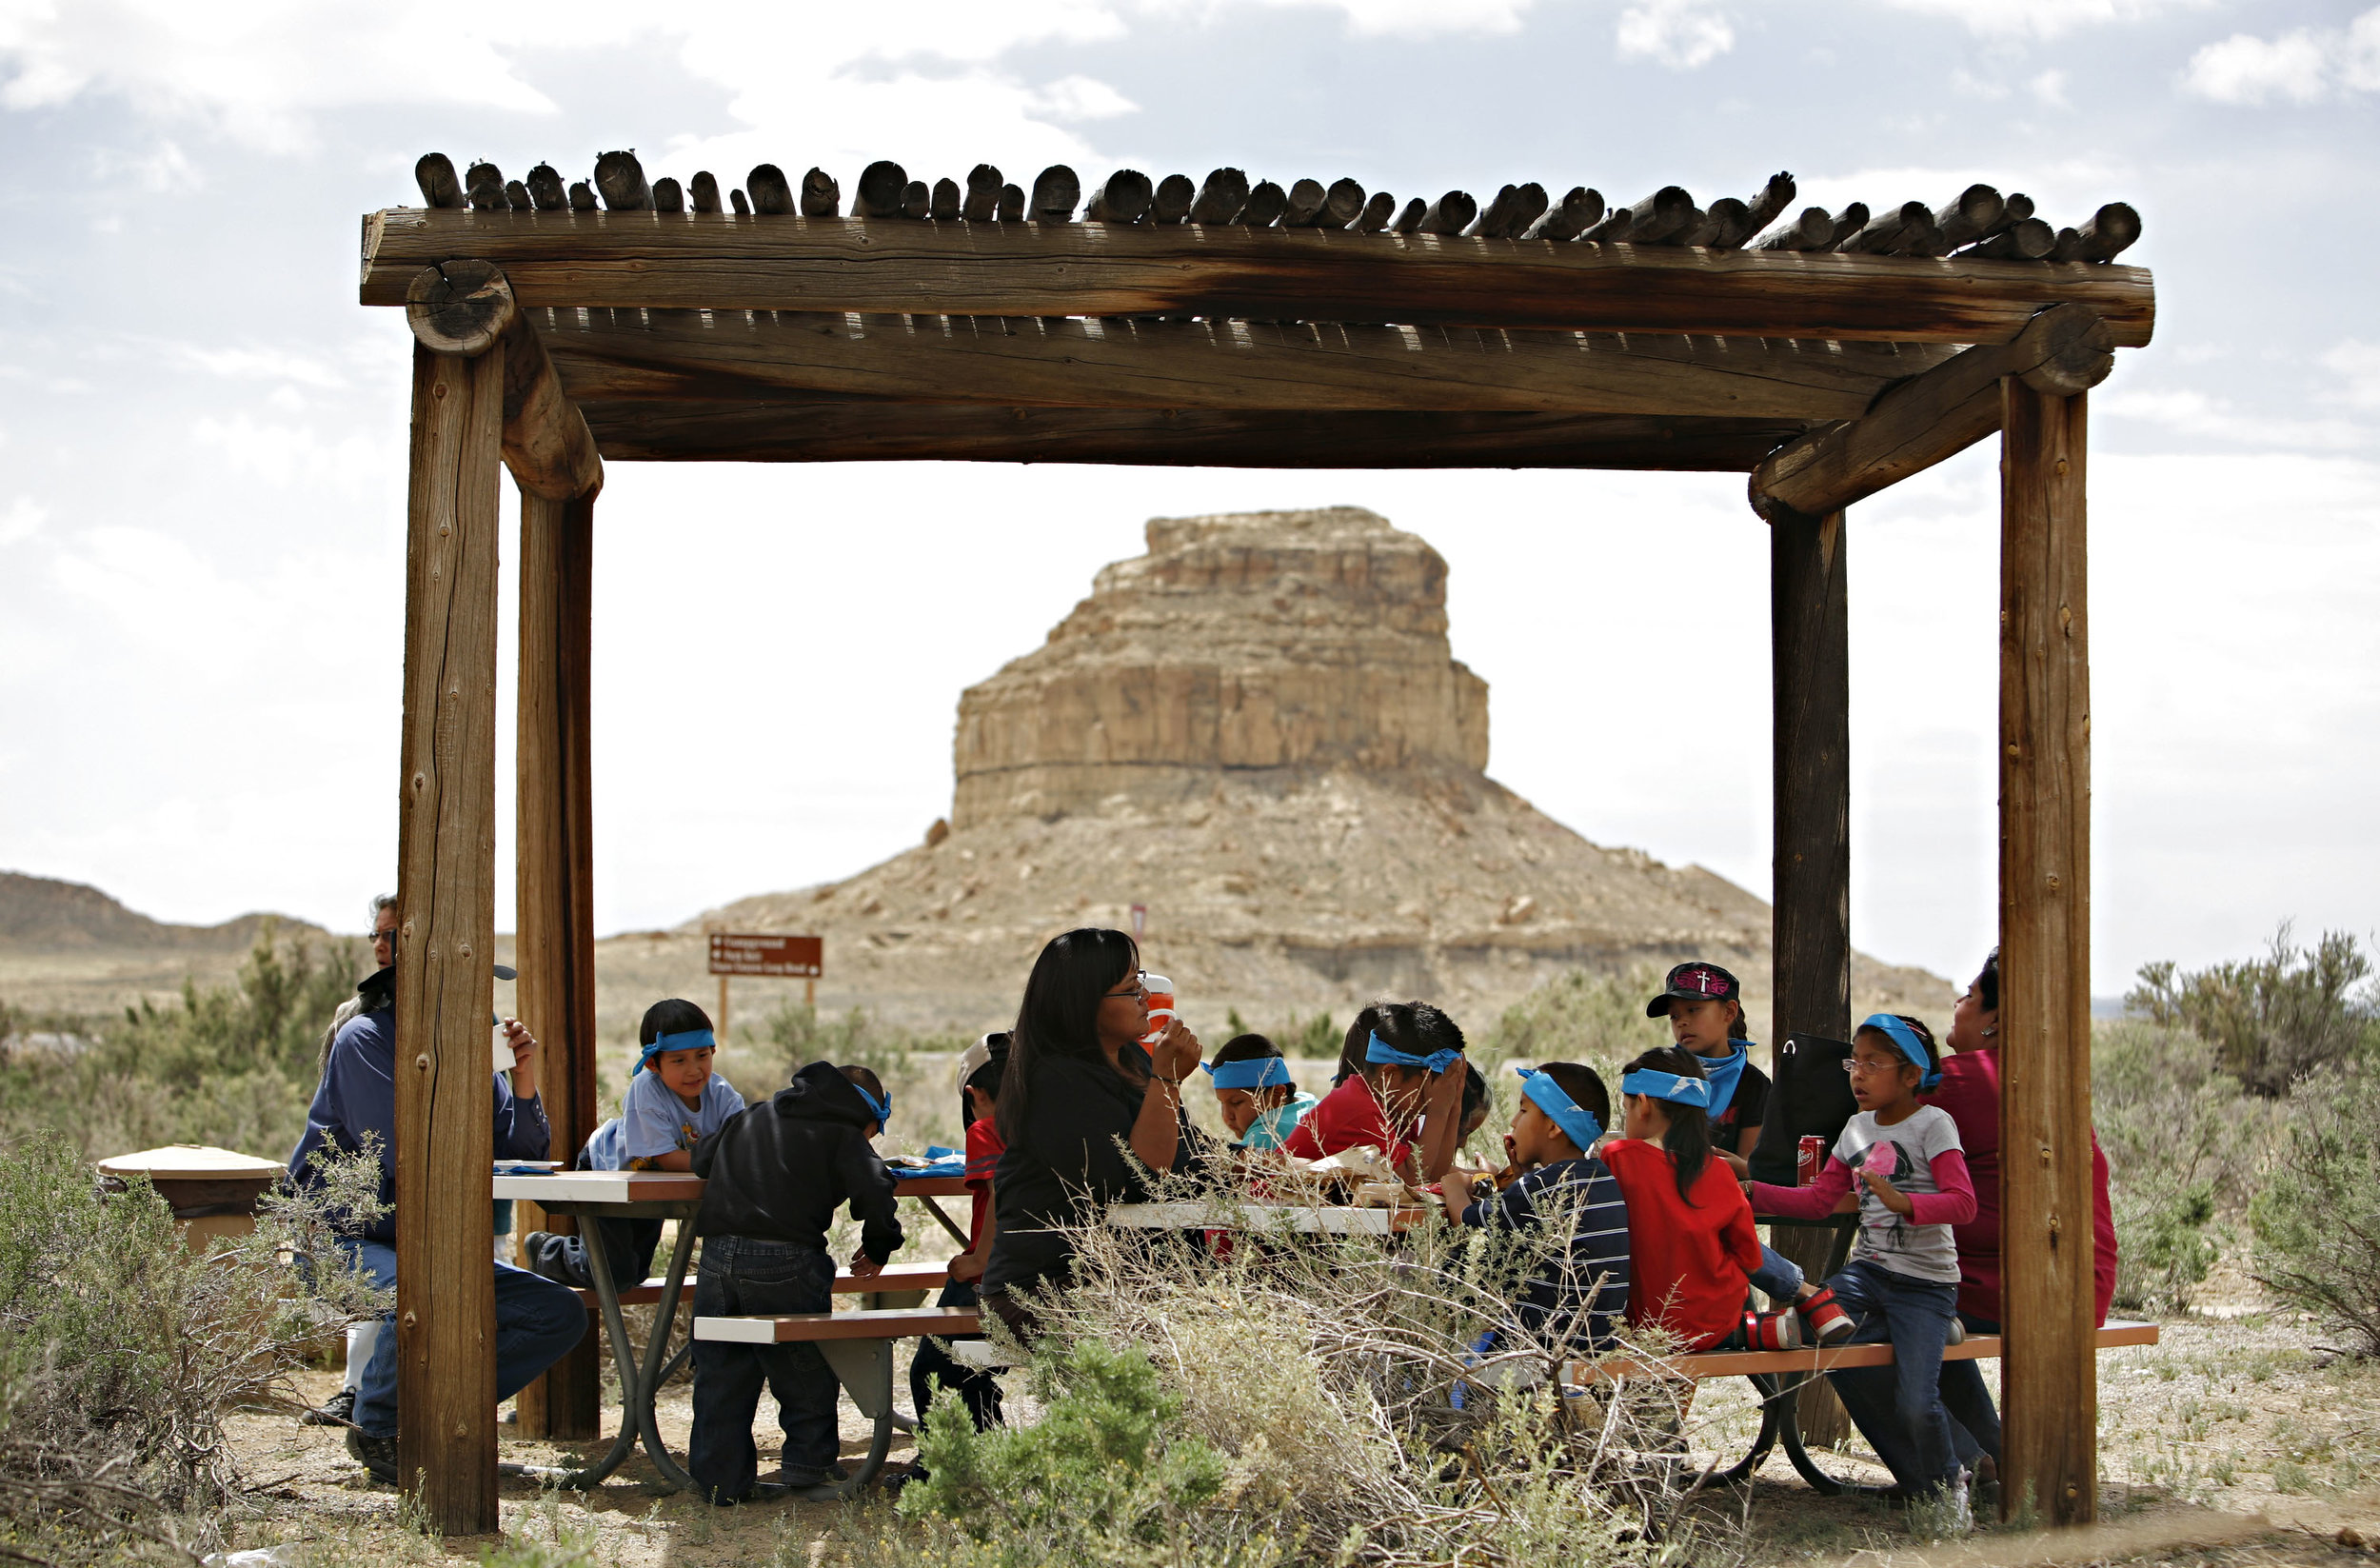 Children from Hanaa'dli Community School eat lunch outside the new visitor center at Chaco Canyon and in front of Fajada Butte, Thursday, April 26, 2012. (Morgan Petroski/Albuquerque Journal)